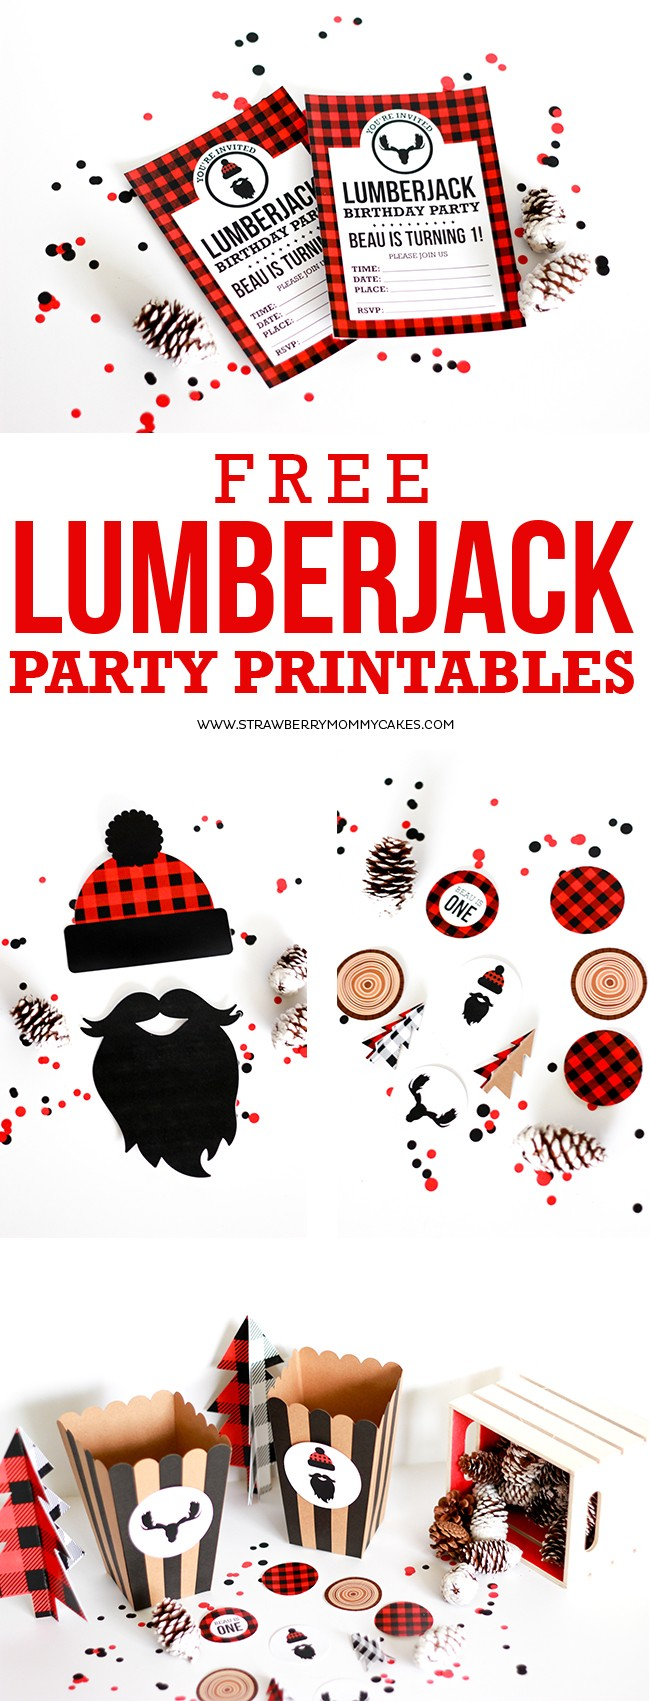 FREE Printable Birthday Invitations - PLUS Lumberjack Party Printables